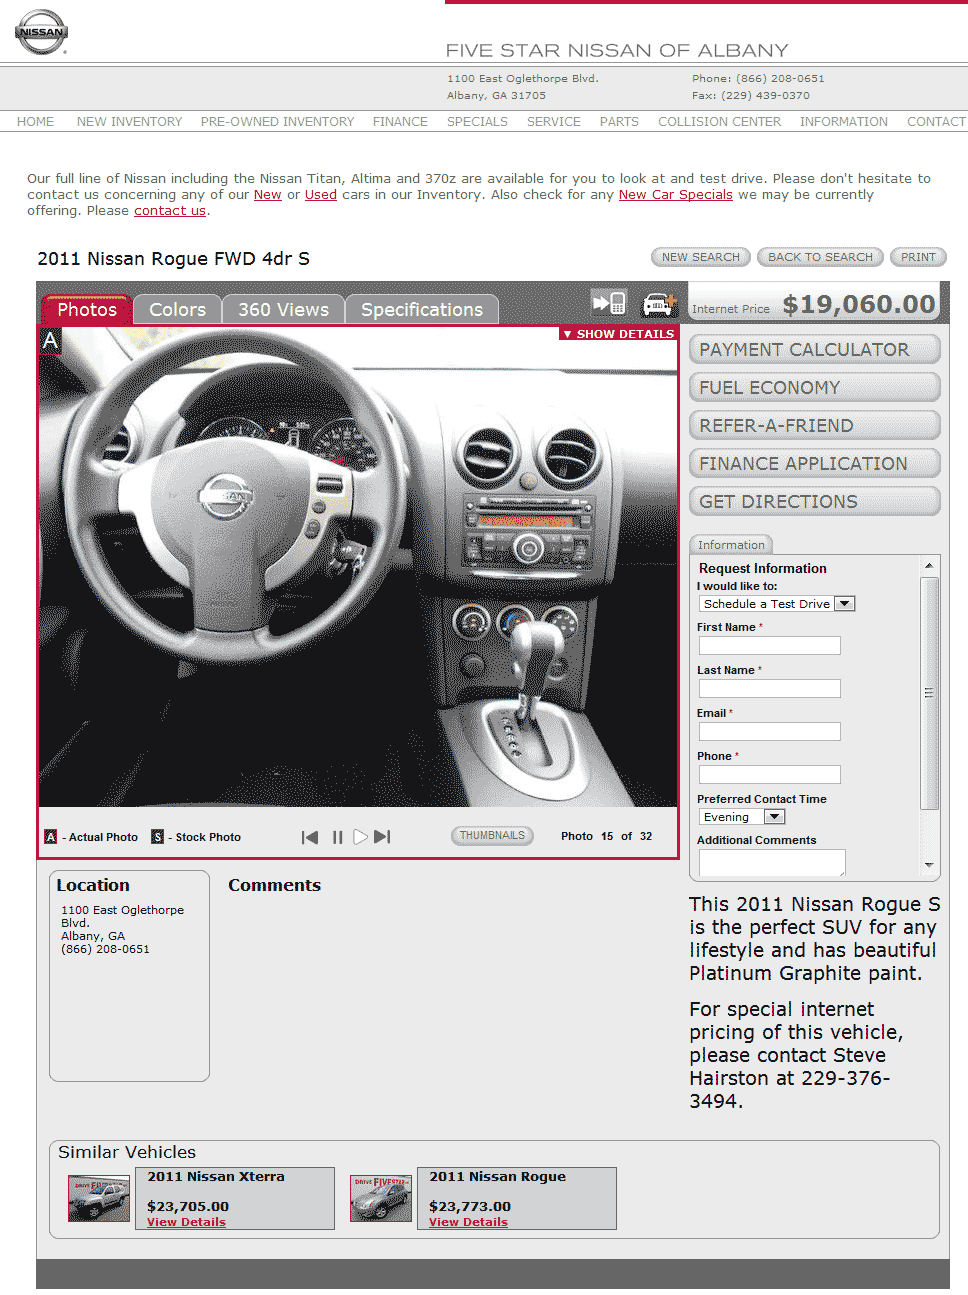 Five Star Nissan Albany, GA View Dealer Ad